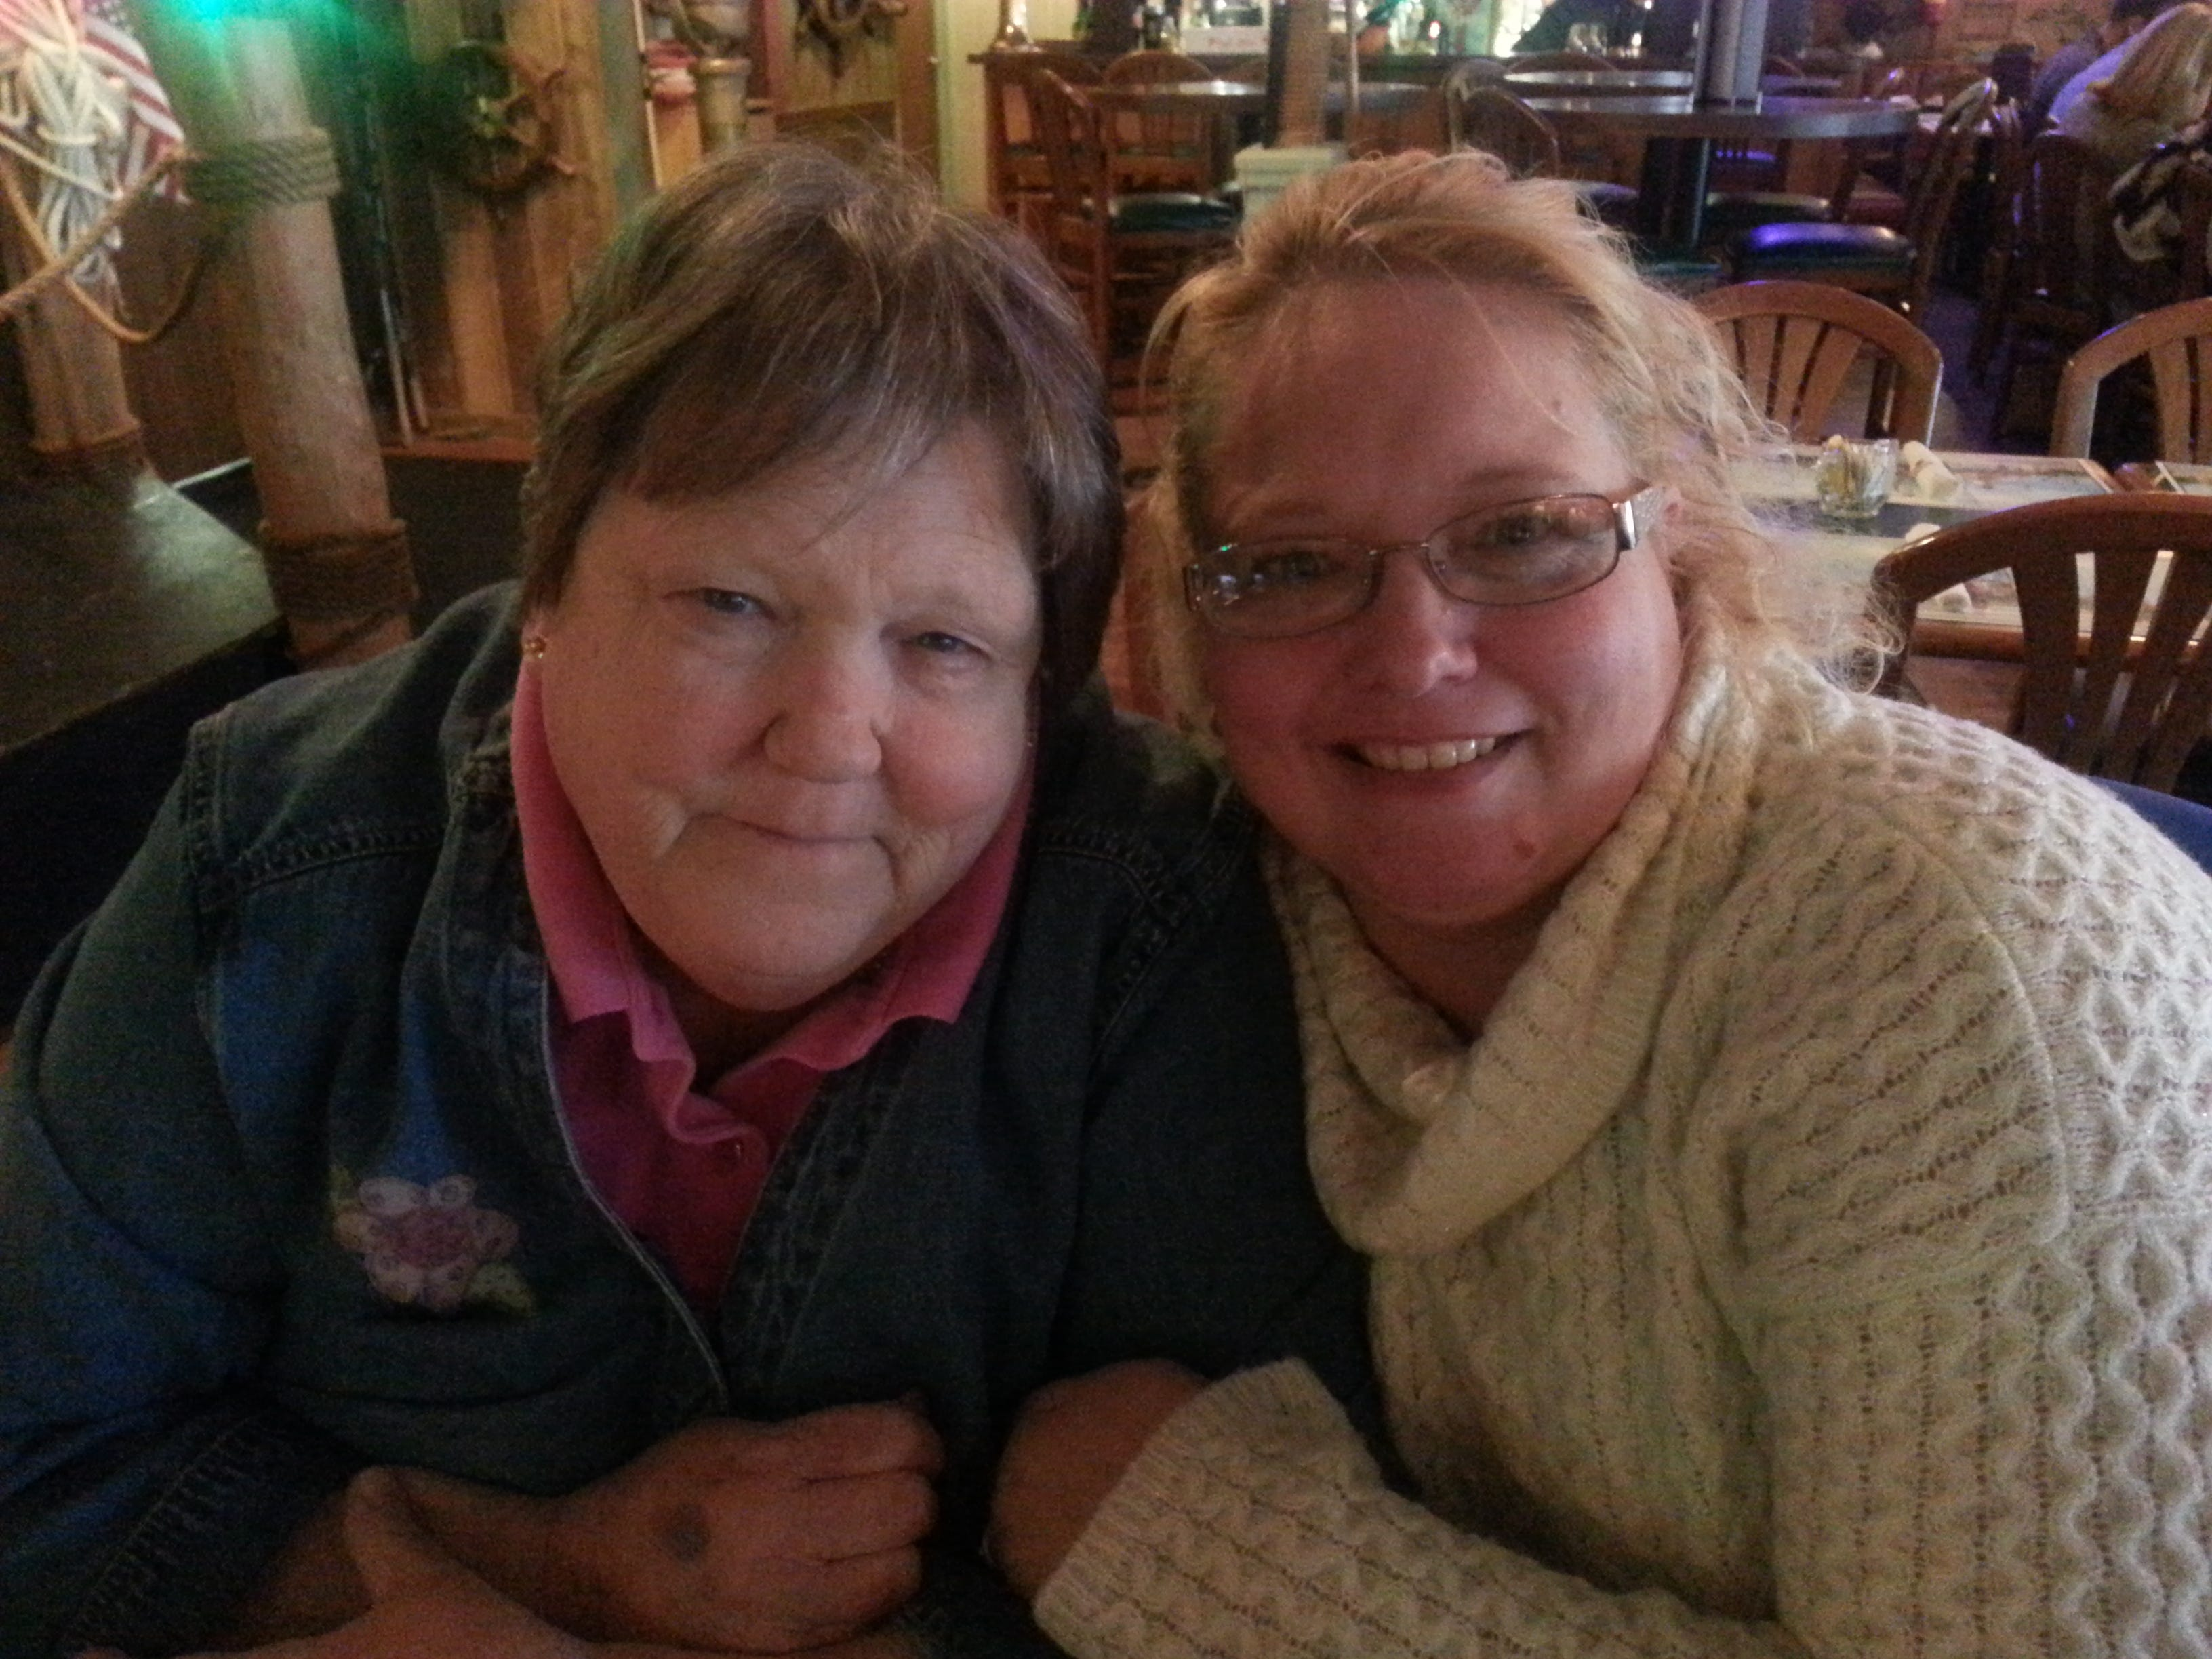 Stephanie Smith, left, with her daughter, Kimberly Chandler.